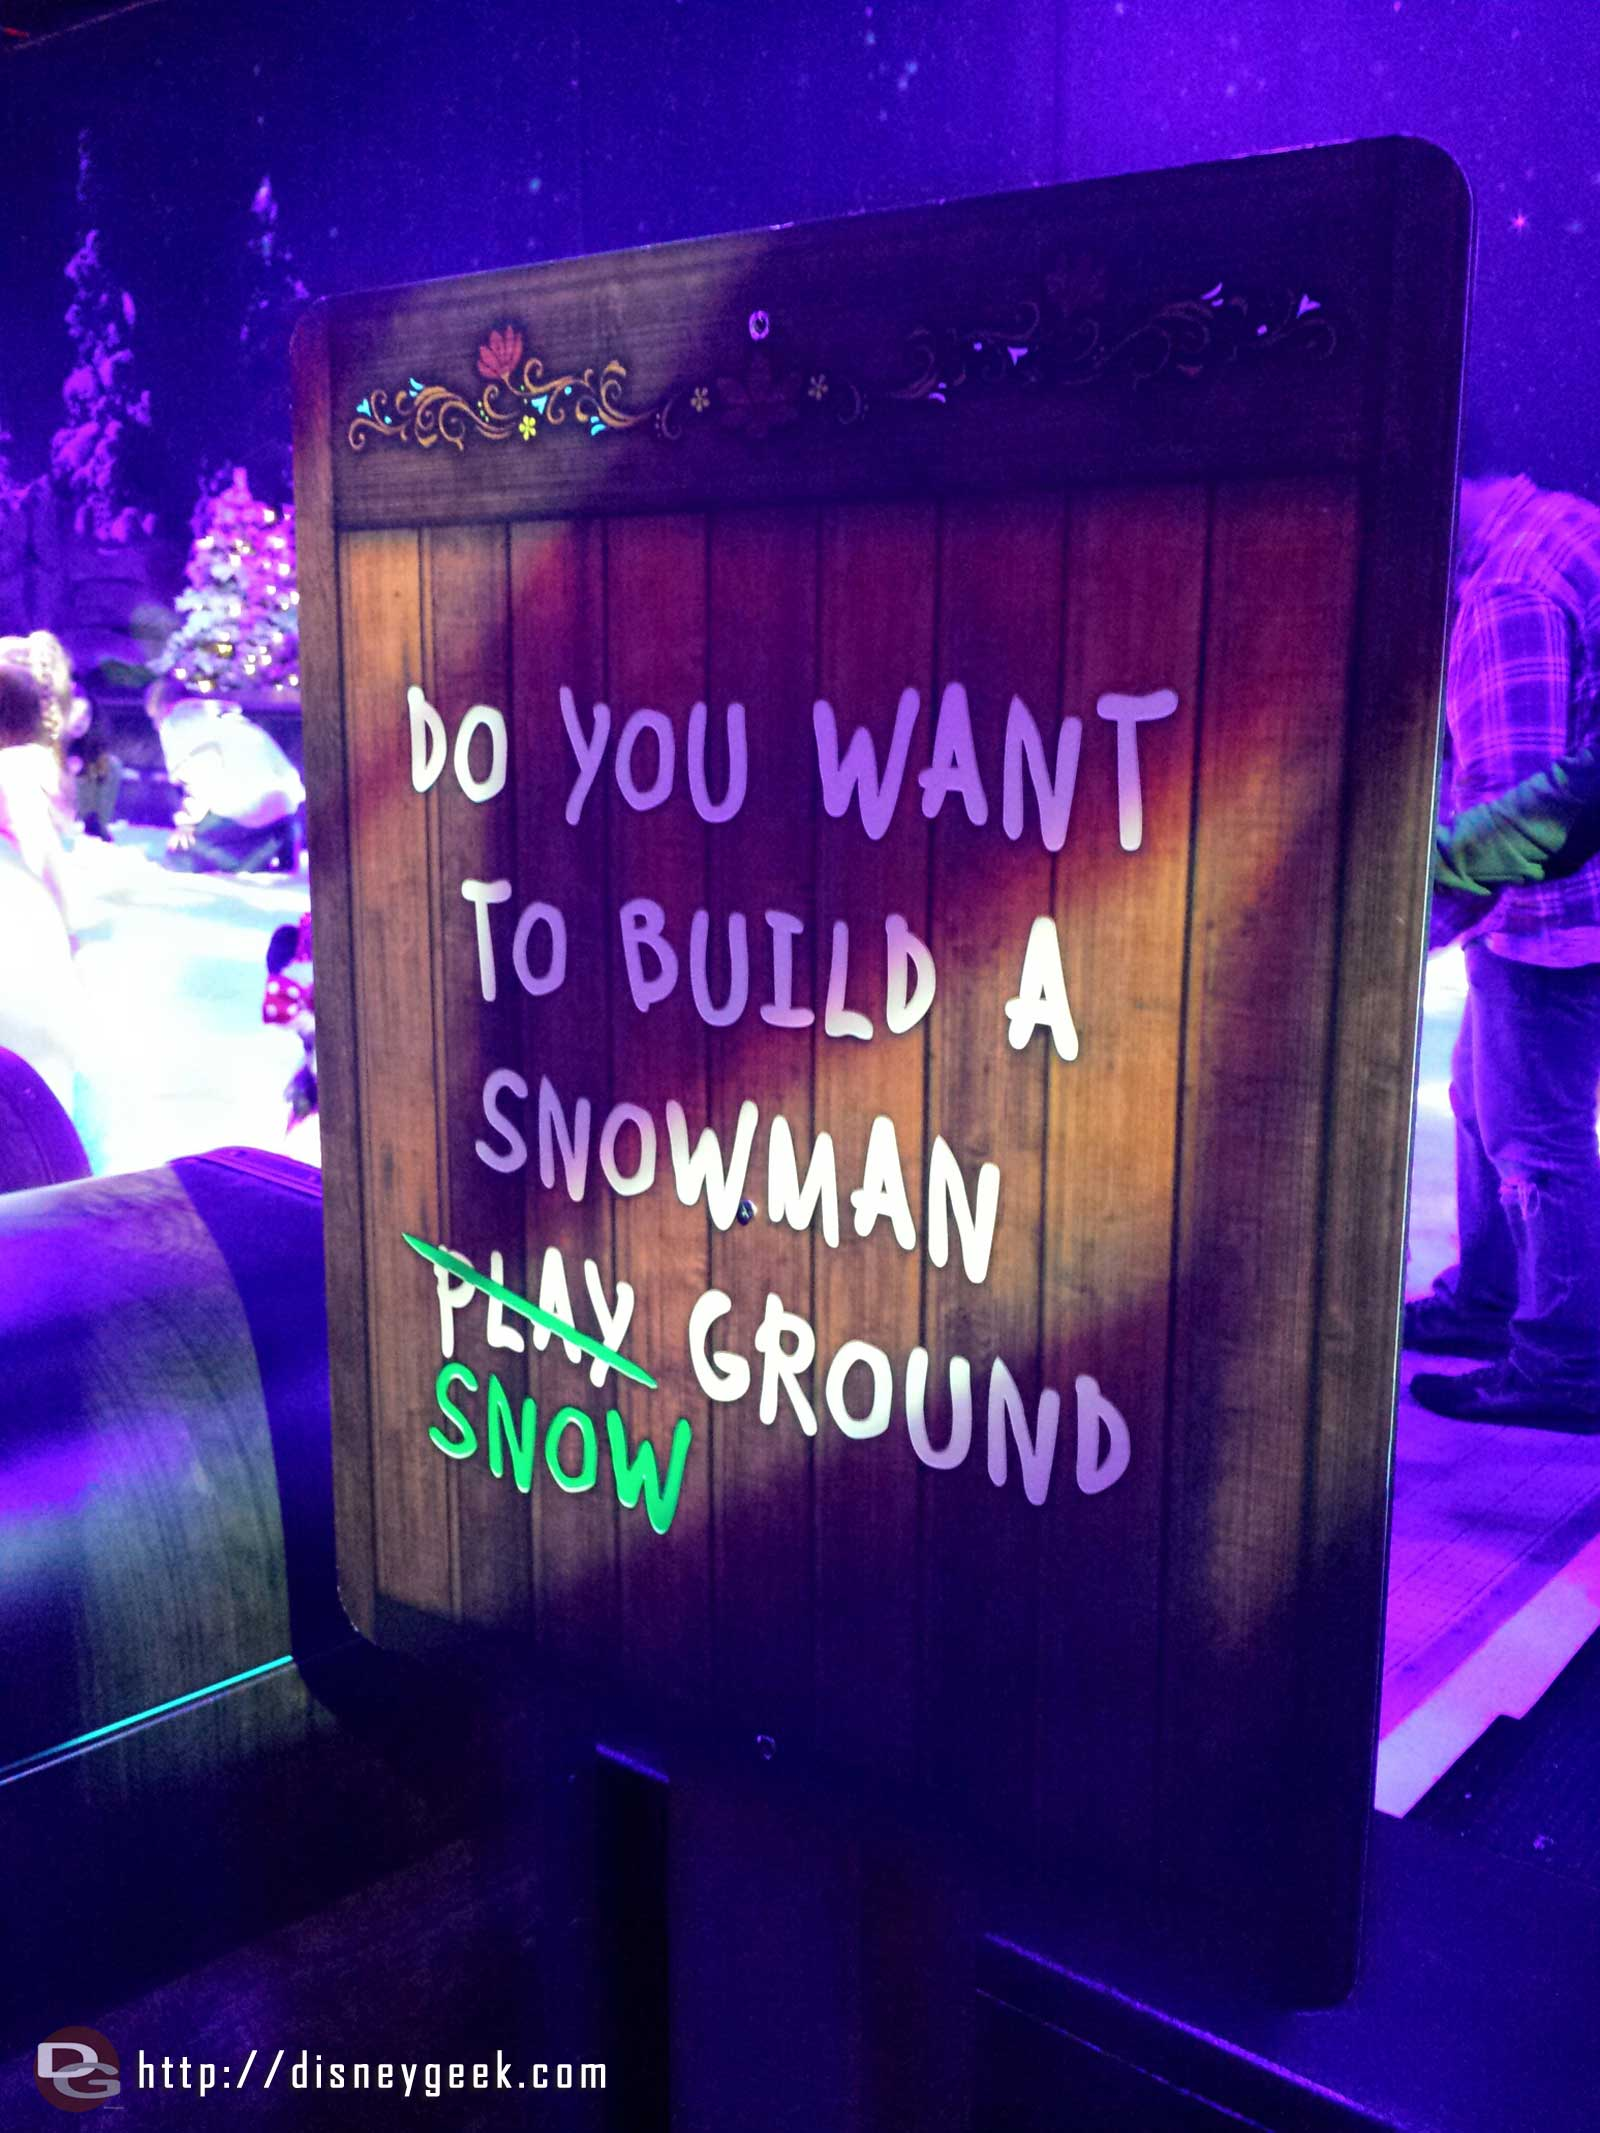 Do you want to build a snowman snow ground sign